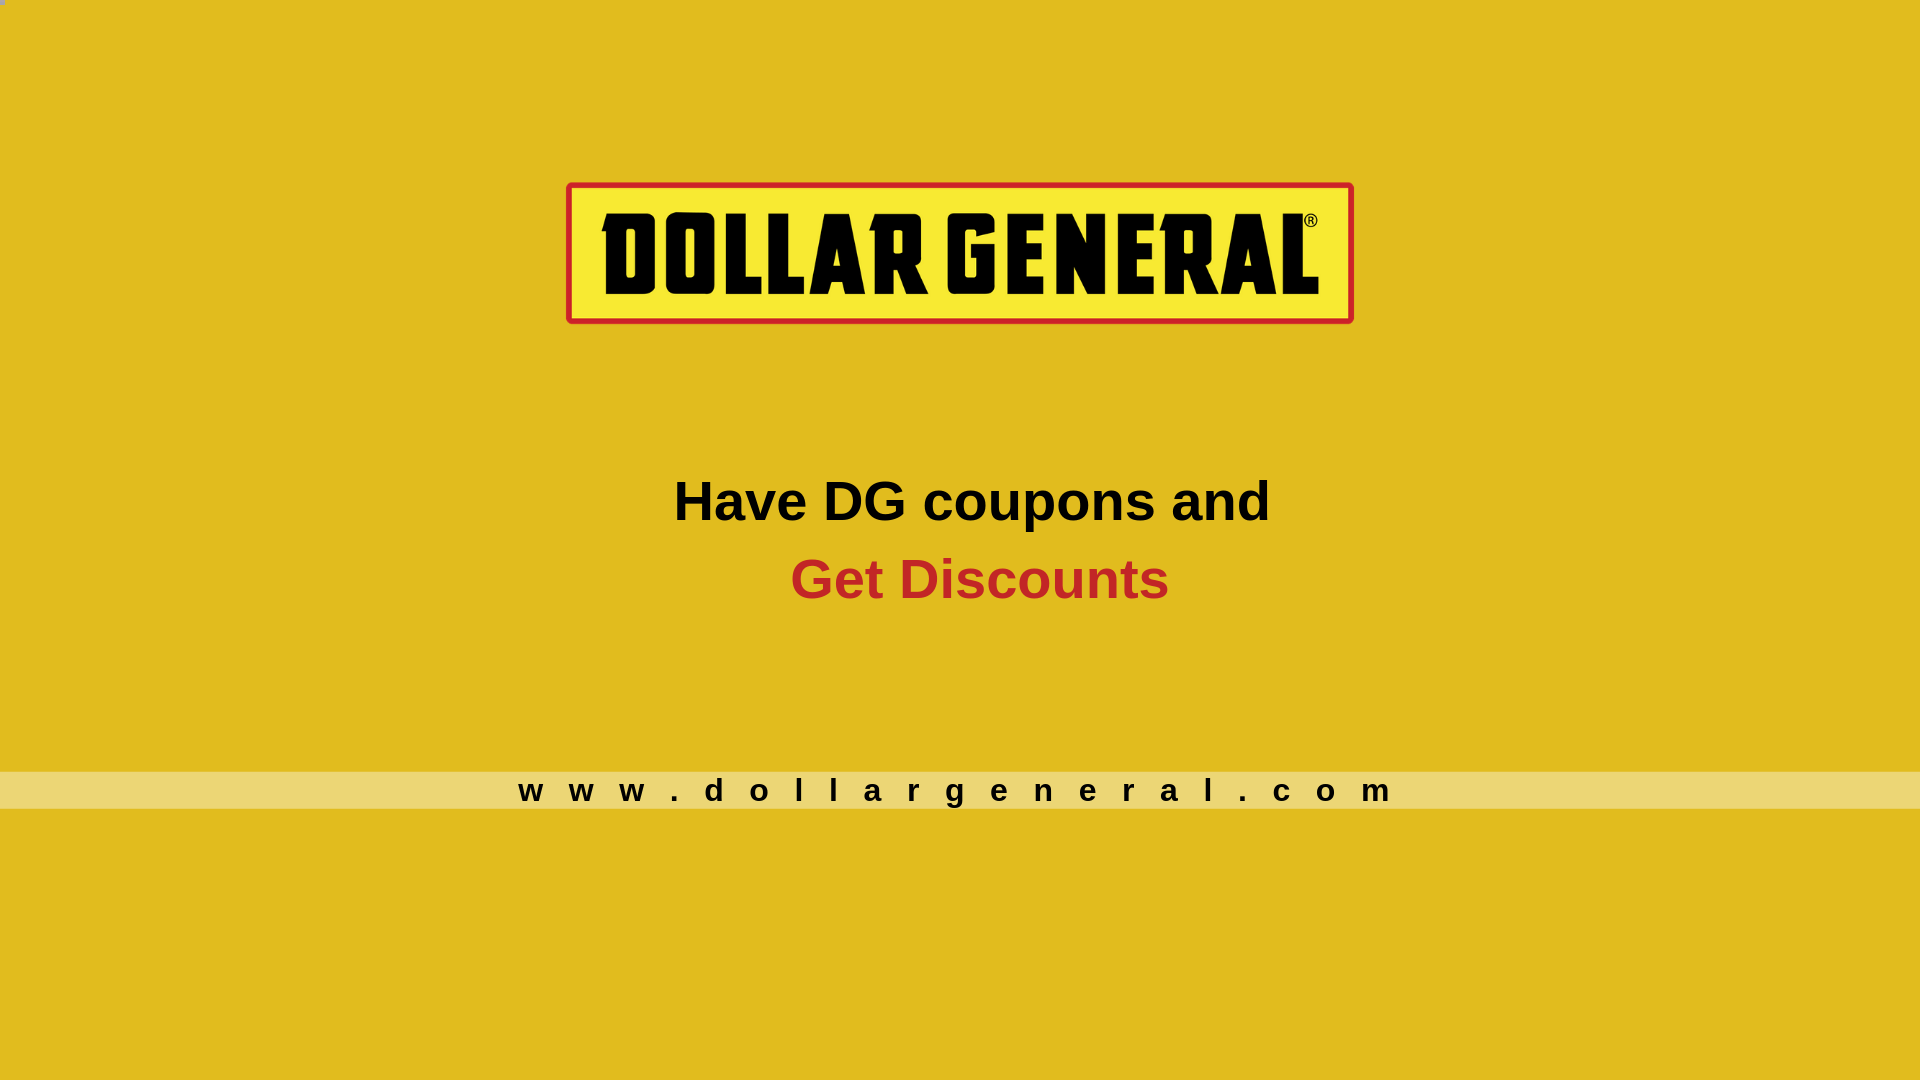 Get Exciting Discounts with DG Coupons